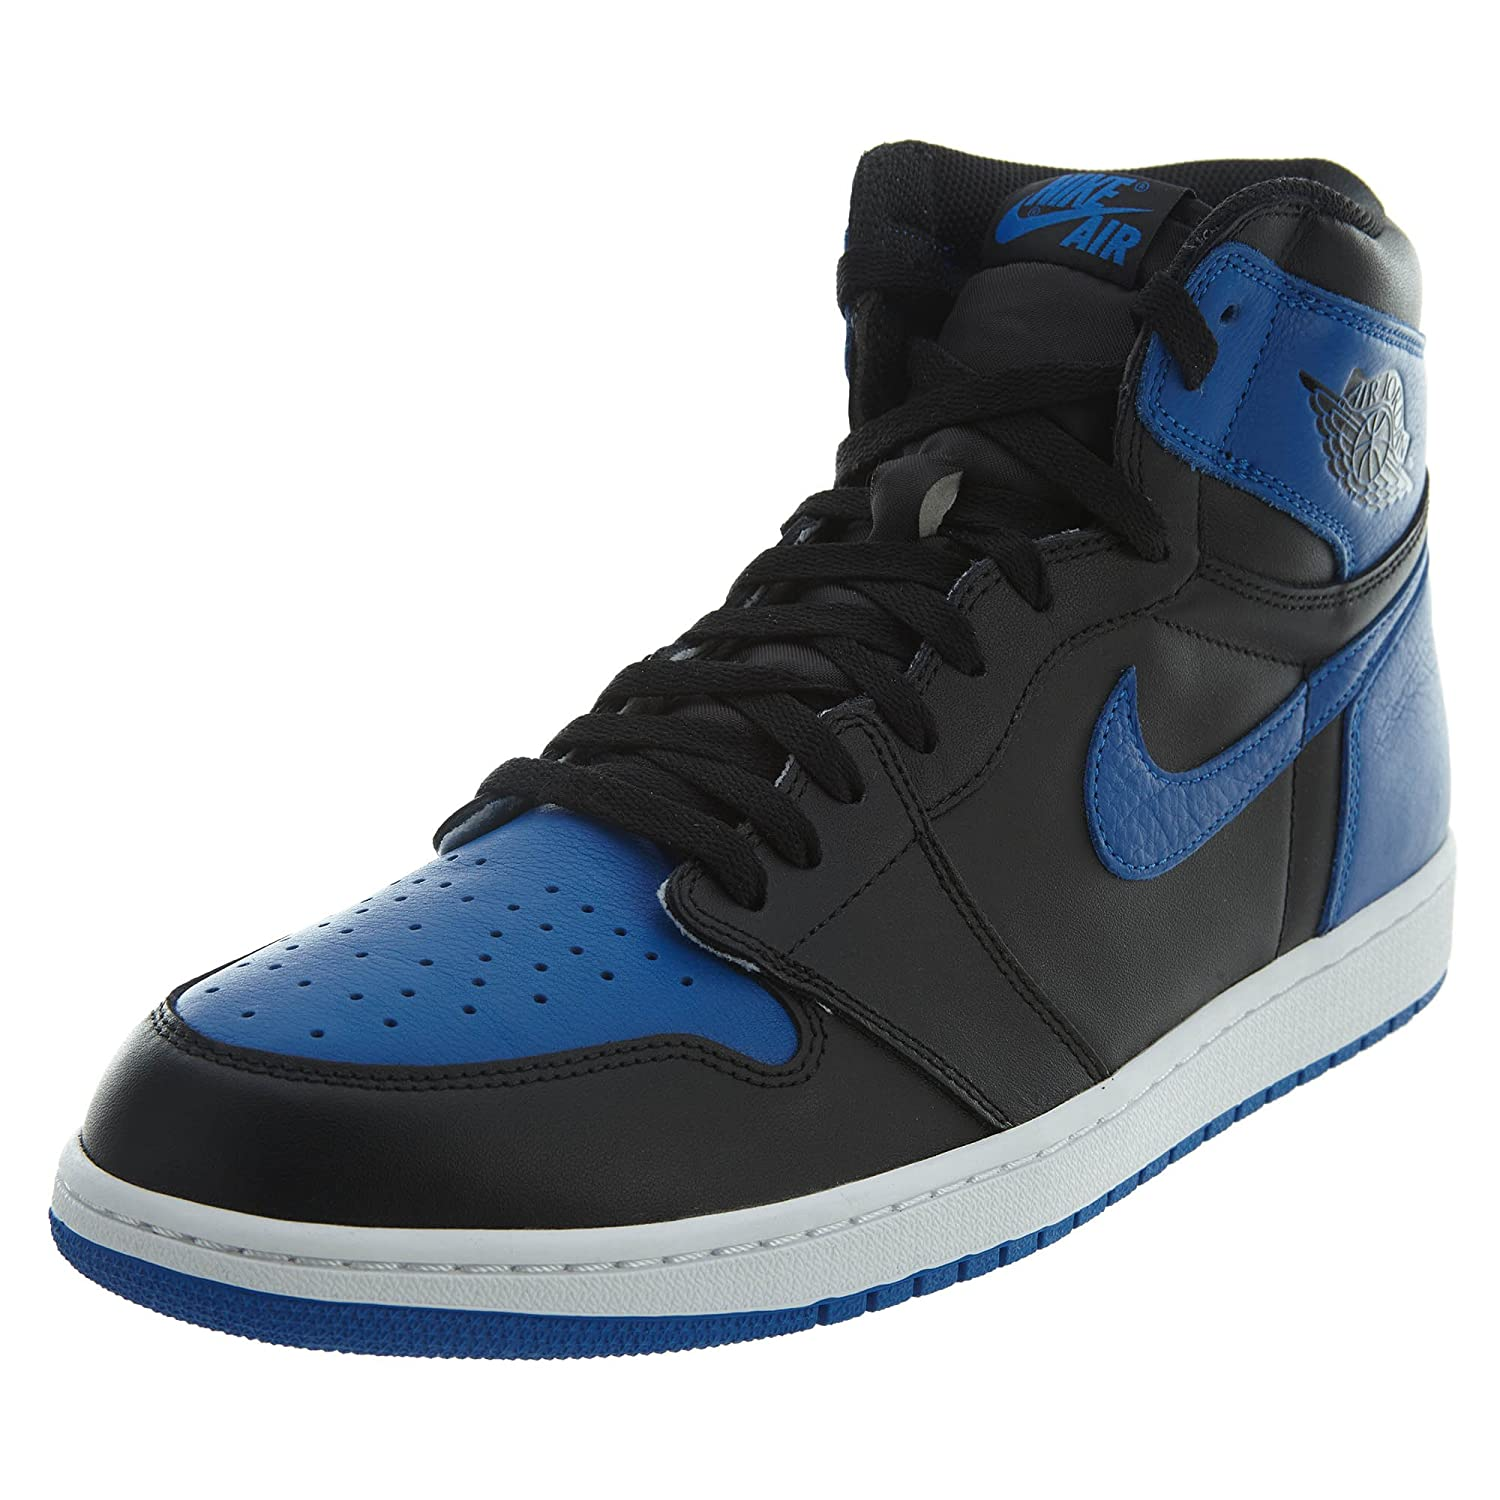 the best attitude d75da 412fb Amazon.com   Nike Men s Air Jordan AJ 1 High Top Shoe, Royal Blue Black White,  9.5 D(M) US   Basketball